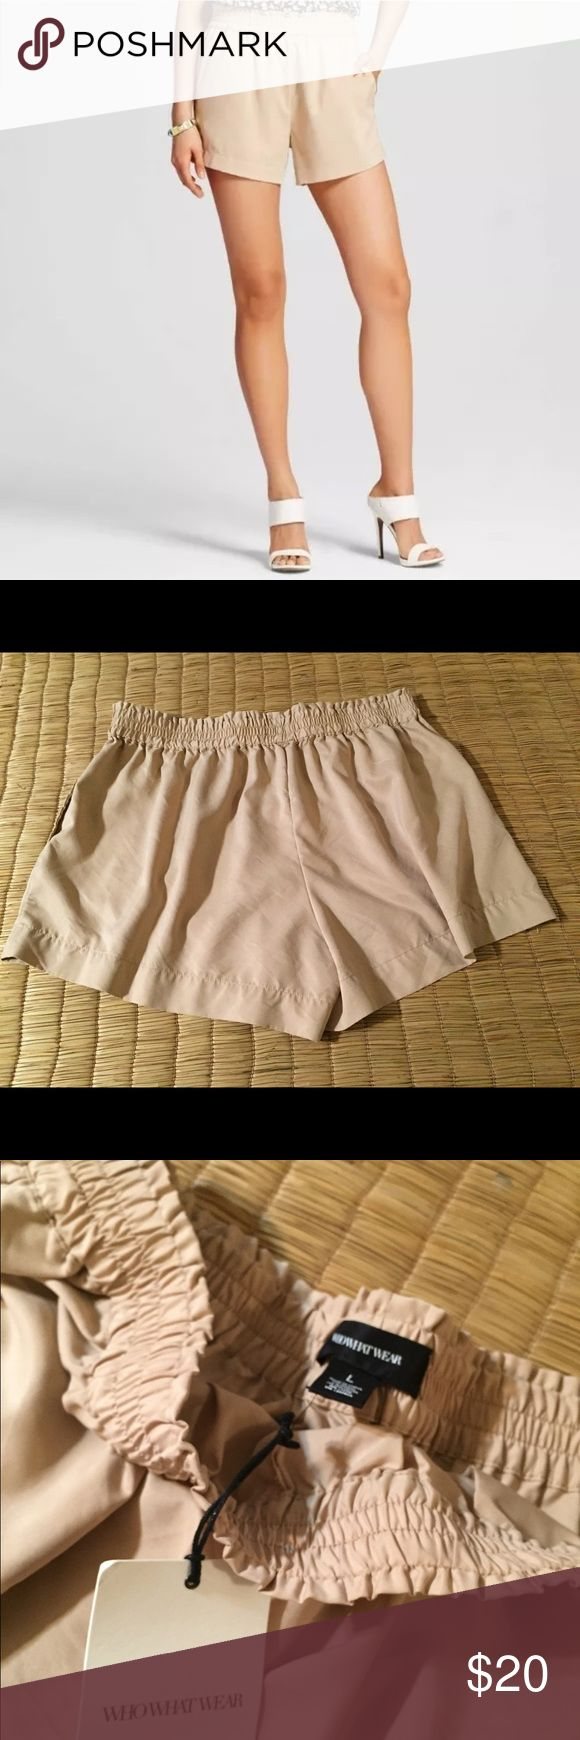 "Who What Wear Nude Smocked Shorts Elastic Waist OTHER DETAILS: Item is not lined and has an elastic waist // Pockets   APPROX MEASUREMENT(S):   Waist (corner to corner of top hem)  - 16""  Length (Total length )- 13.5""  Inseam -3.35"" This item was listed on: 8/30/17  💛Like this item for pricing updates    💛Items ship out ASAP (usually next business day)   💛Answer to Questions / Measurements asked for after 6pm Or on Sunday will be delayed but feel free to ask!   💛Save 15% by purchasing…"